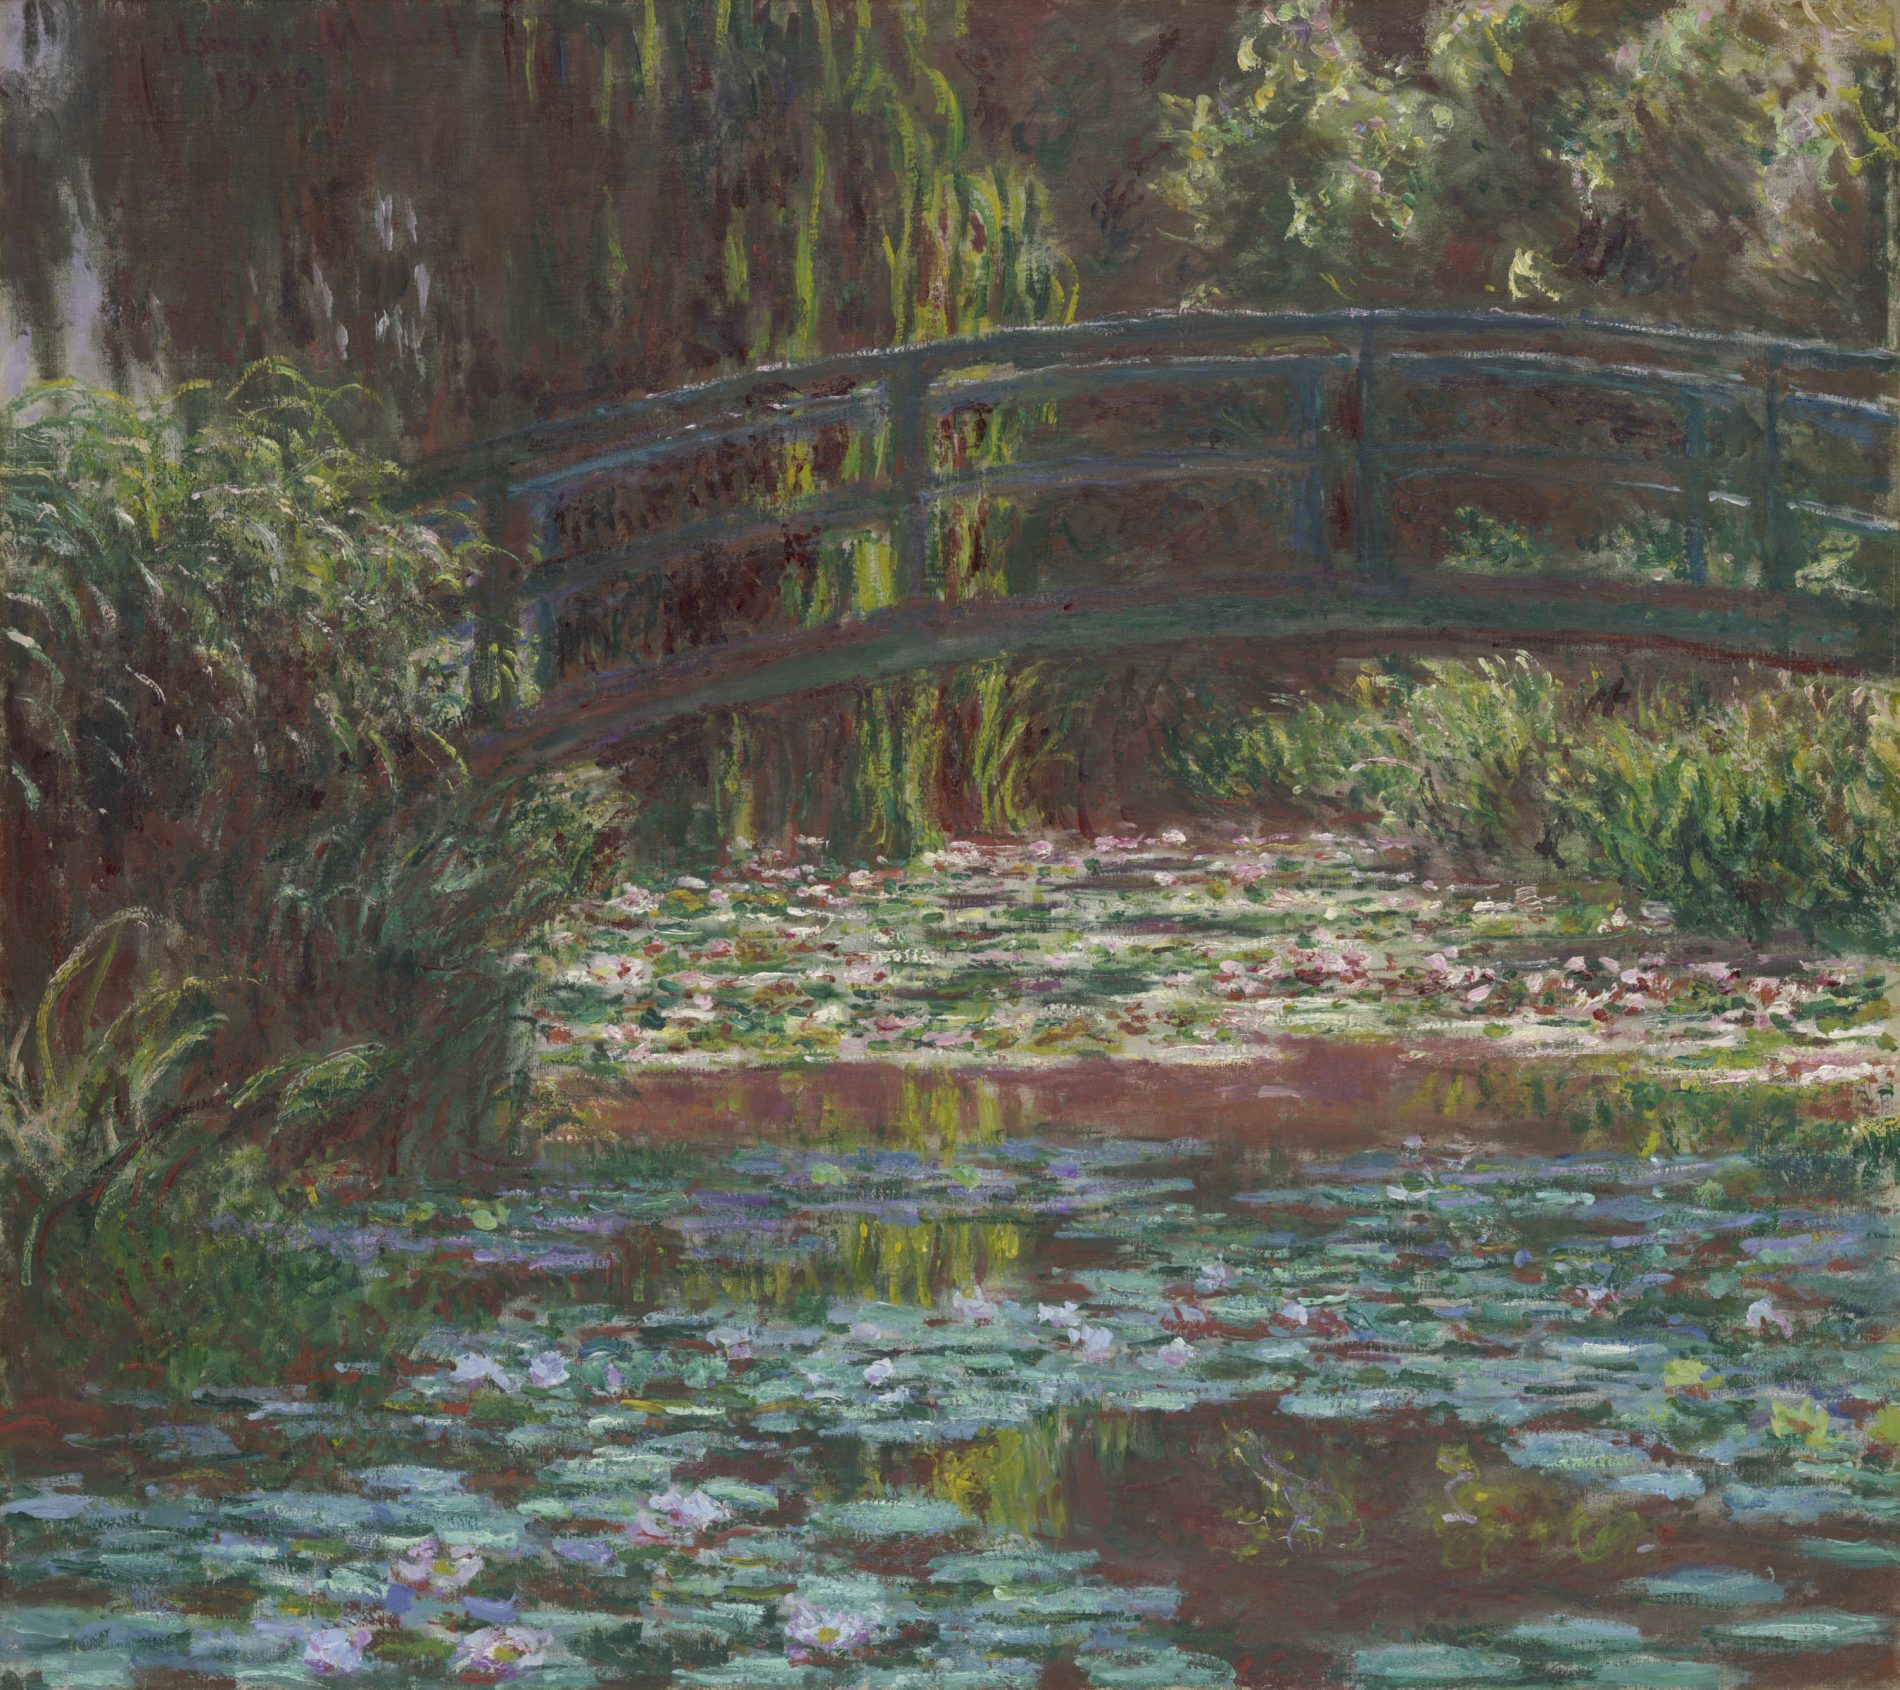 Claude Monet. Water Lily Pond, 1900. The Art Institute of Chicago, Mr. and Mrs. Lewis Larned Coburn Memorial Collection, 1933.441.